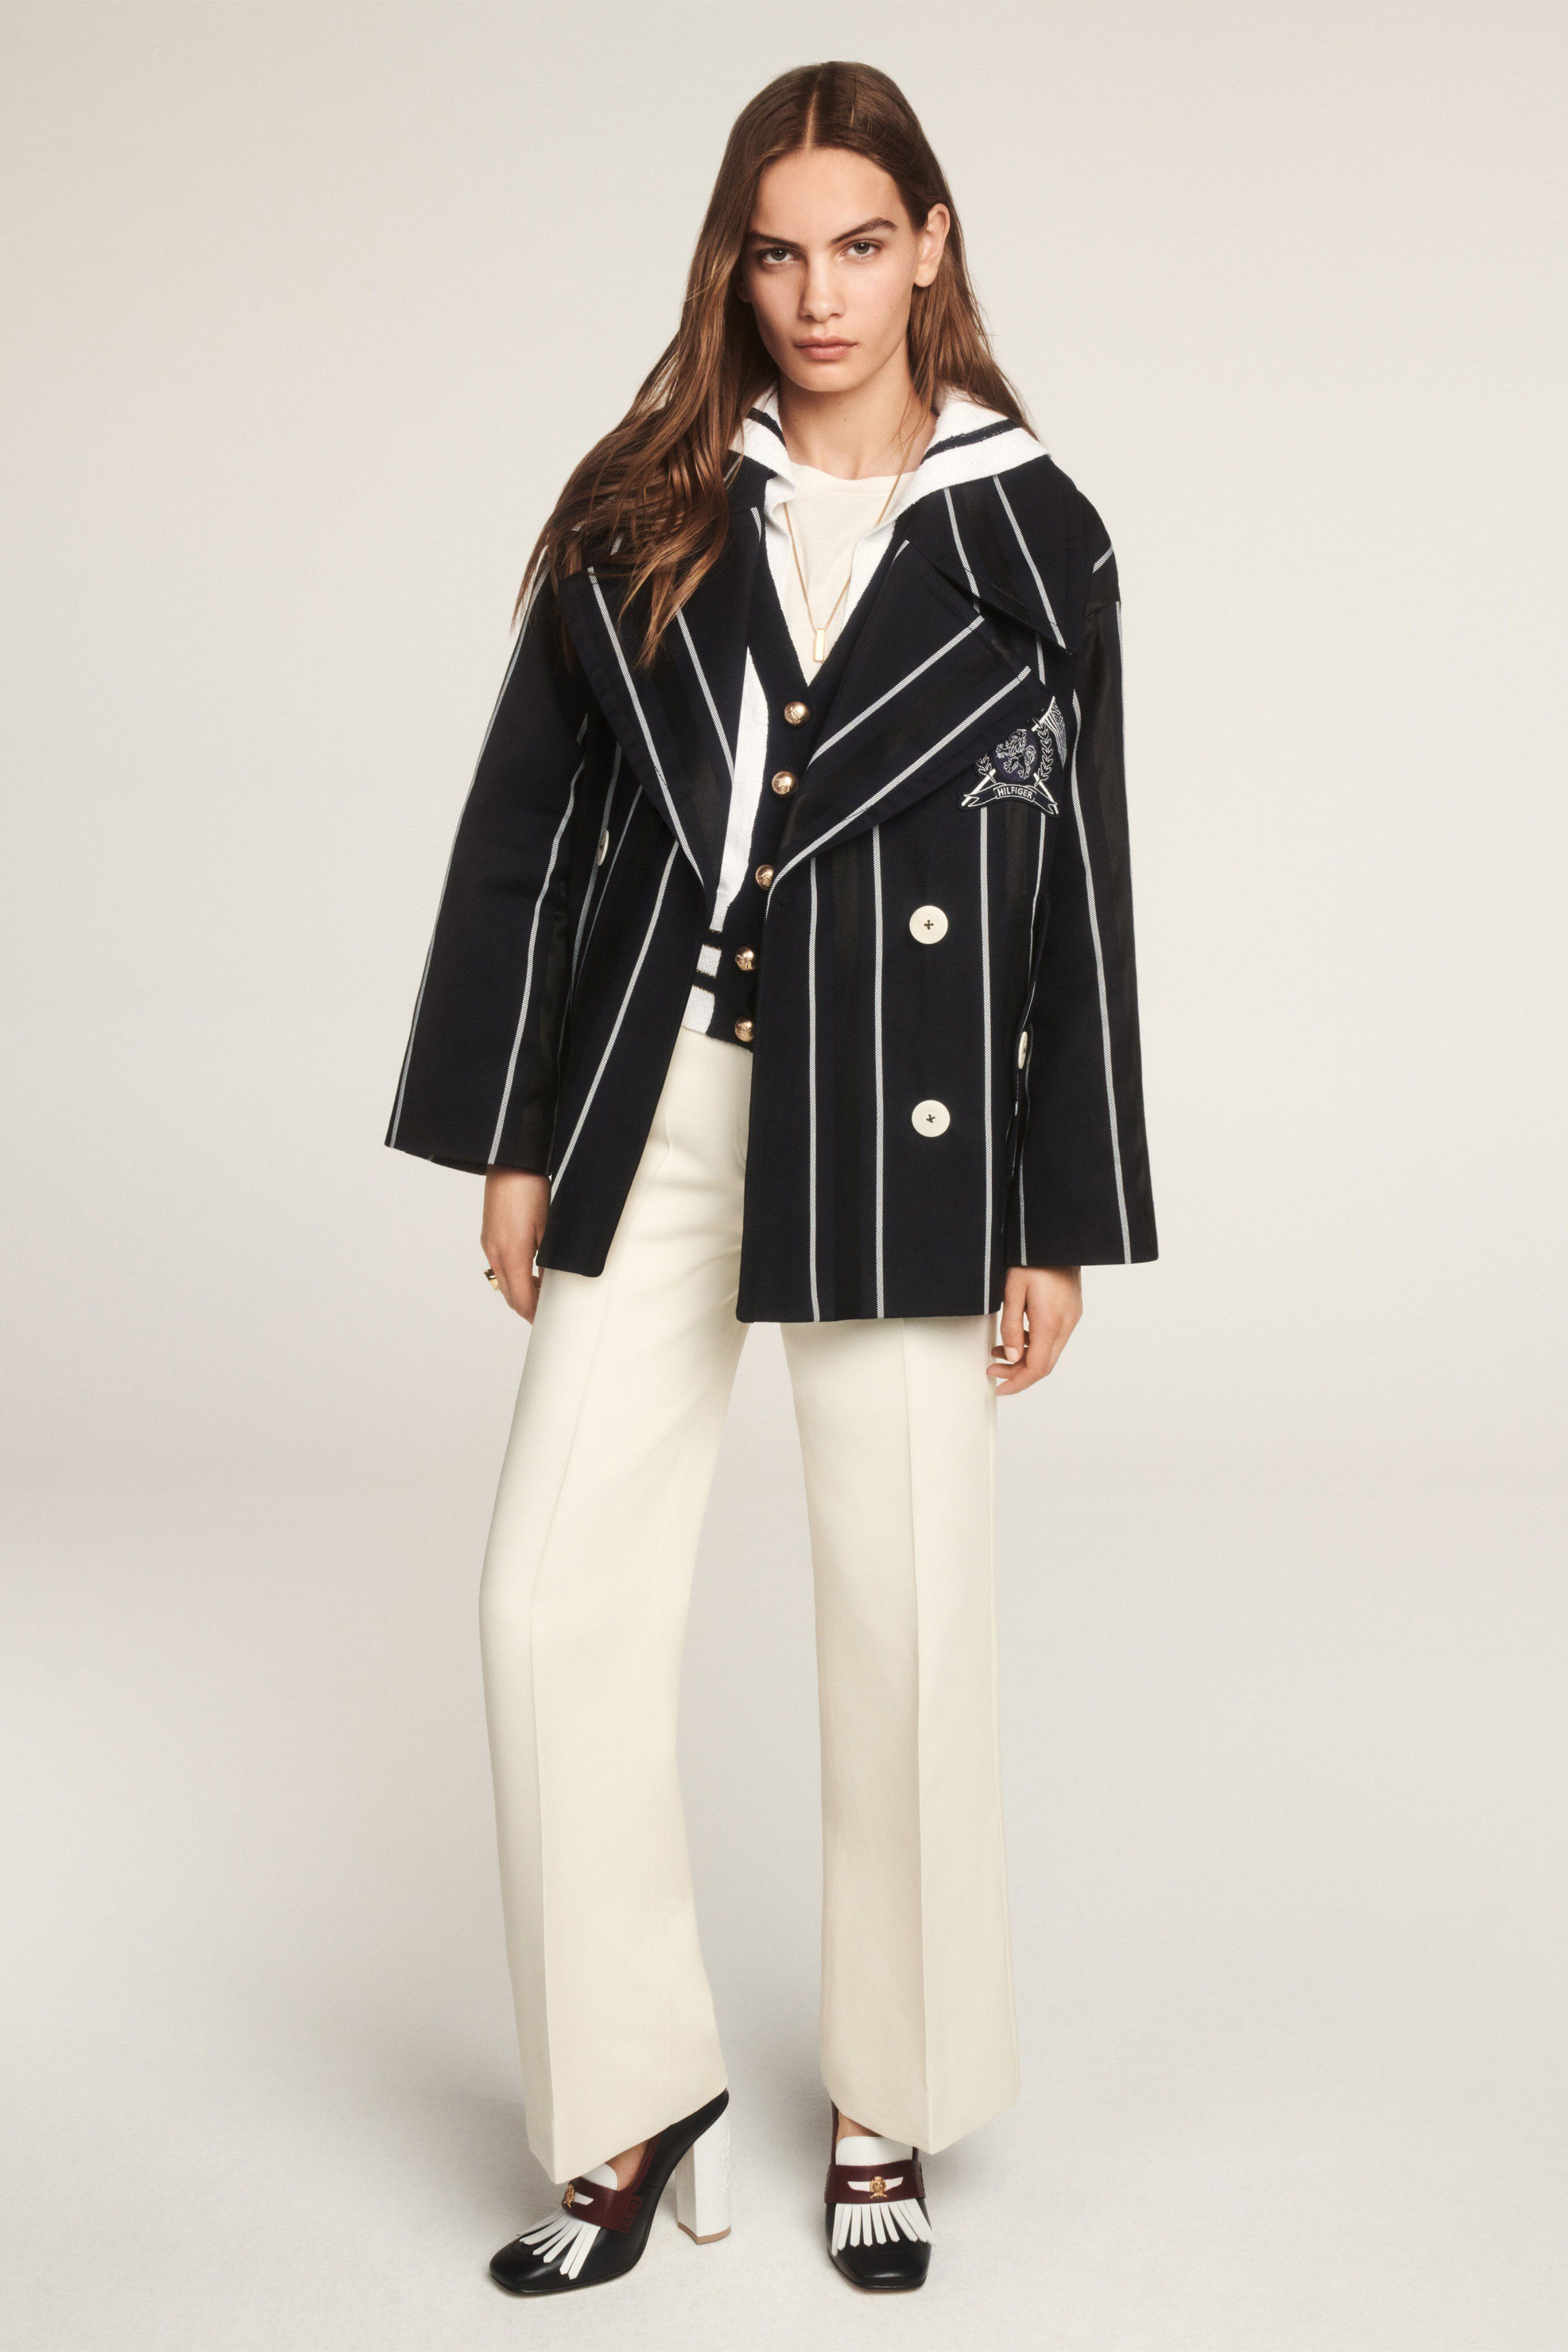 Tommy Hilfiger Spring 2020 Ready to Wear Collection Vogue